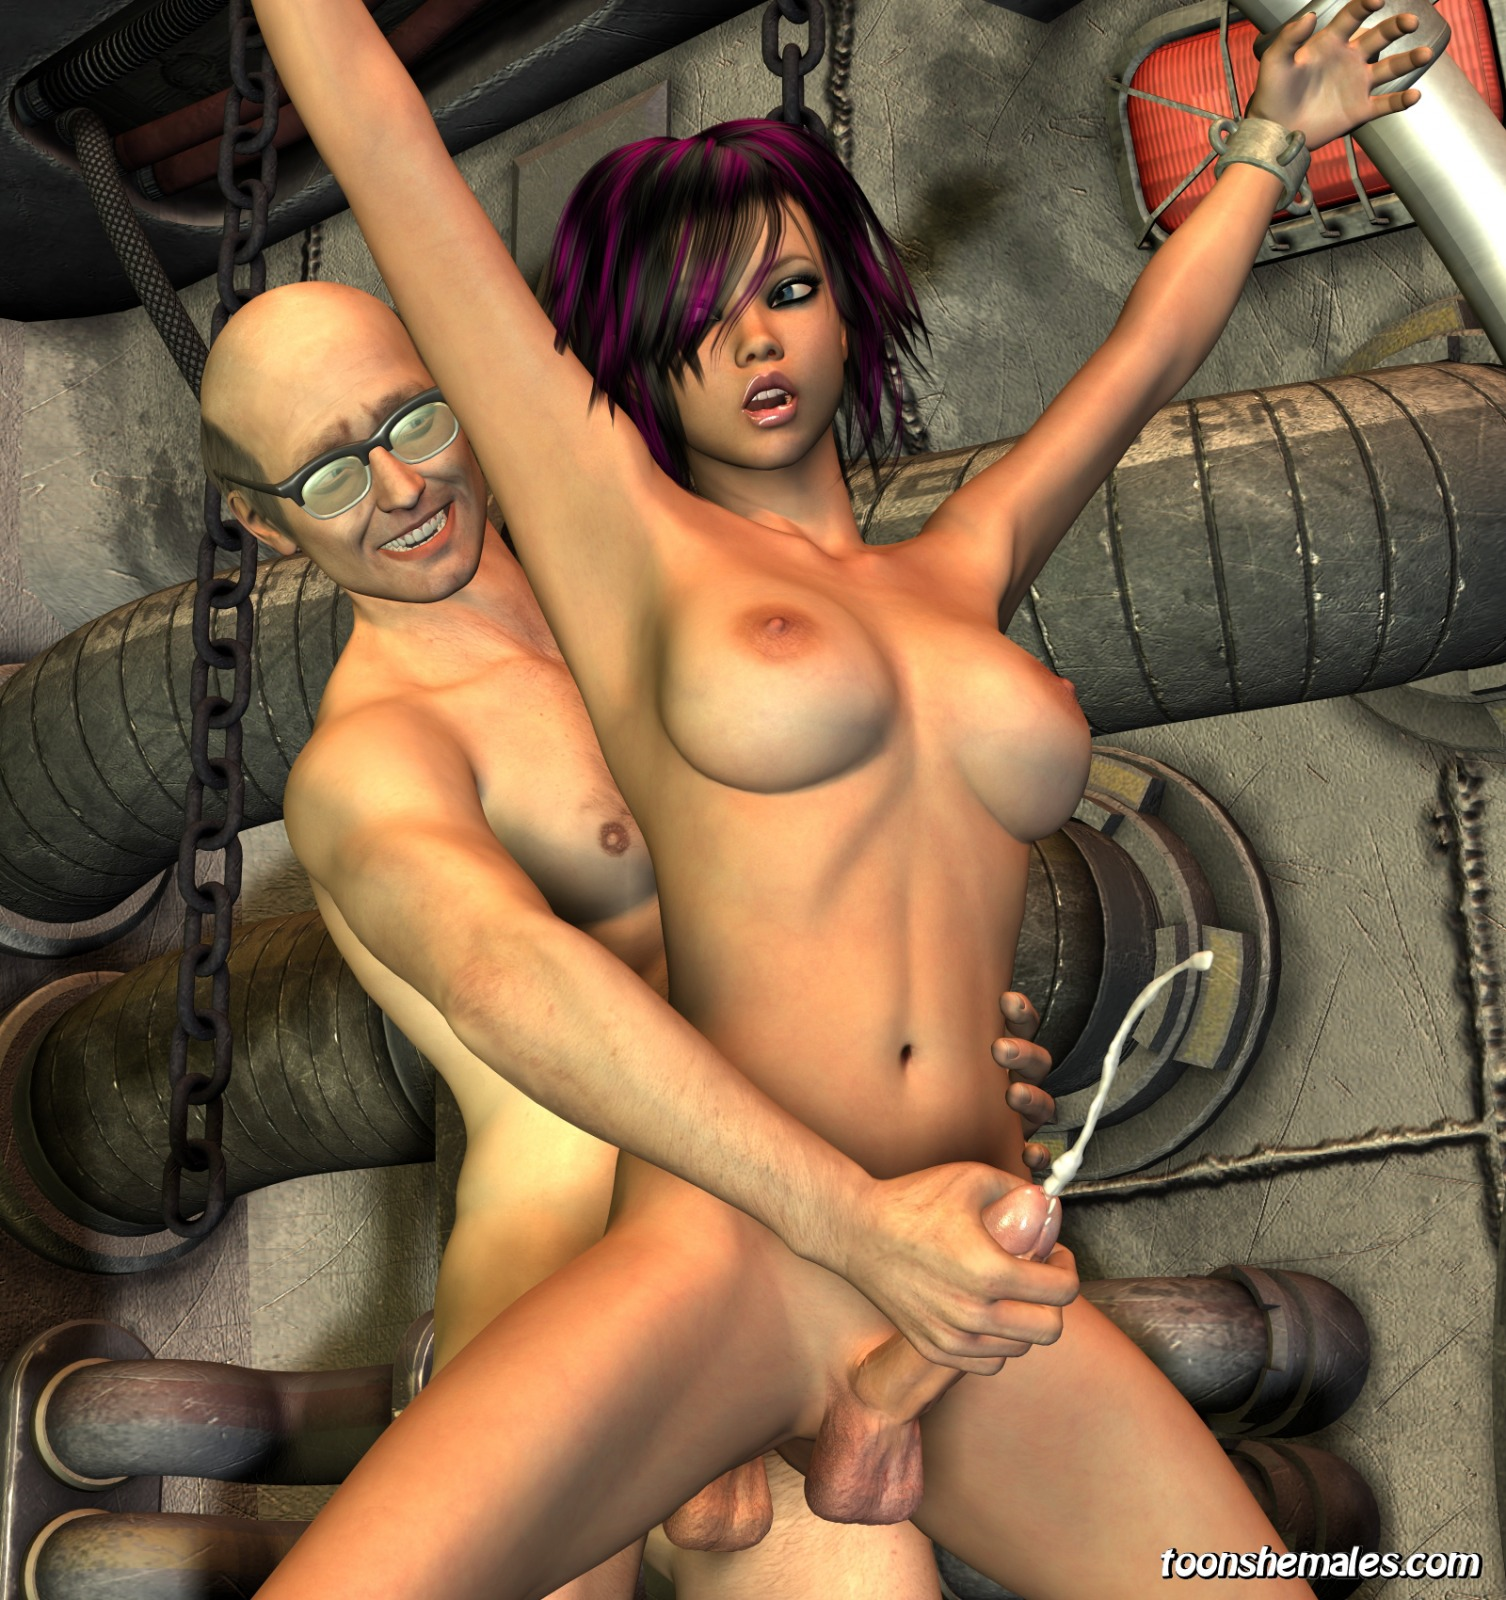 Zombie shemales fuck girls exploited photo